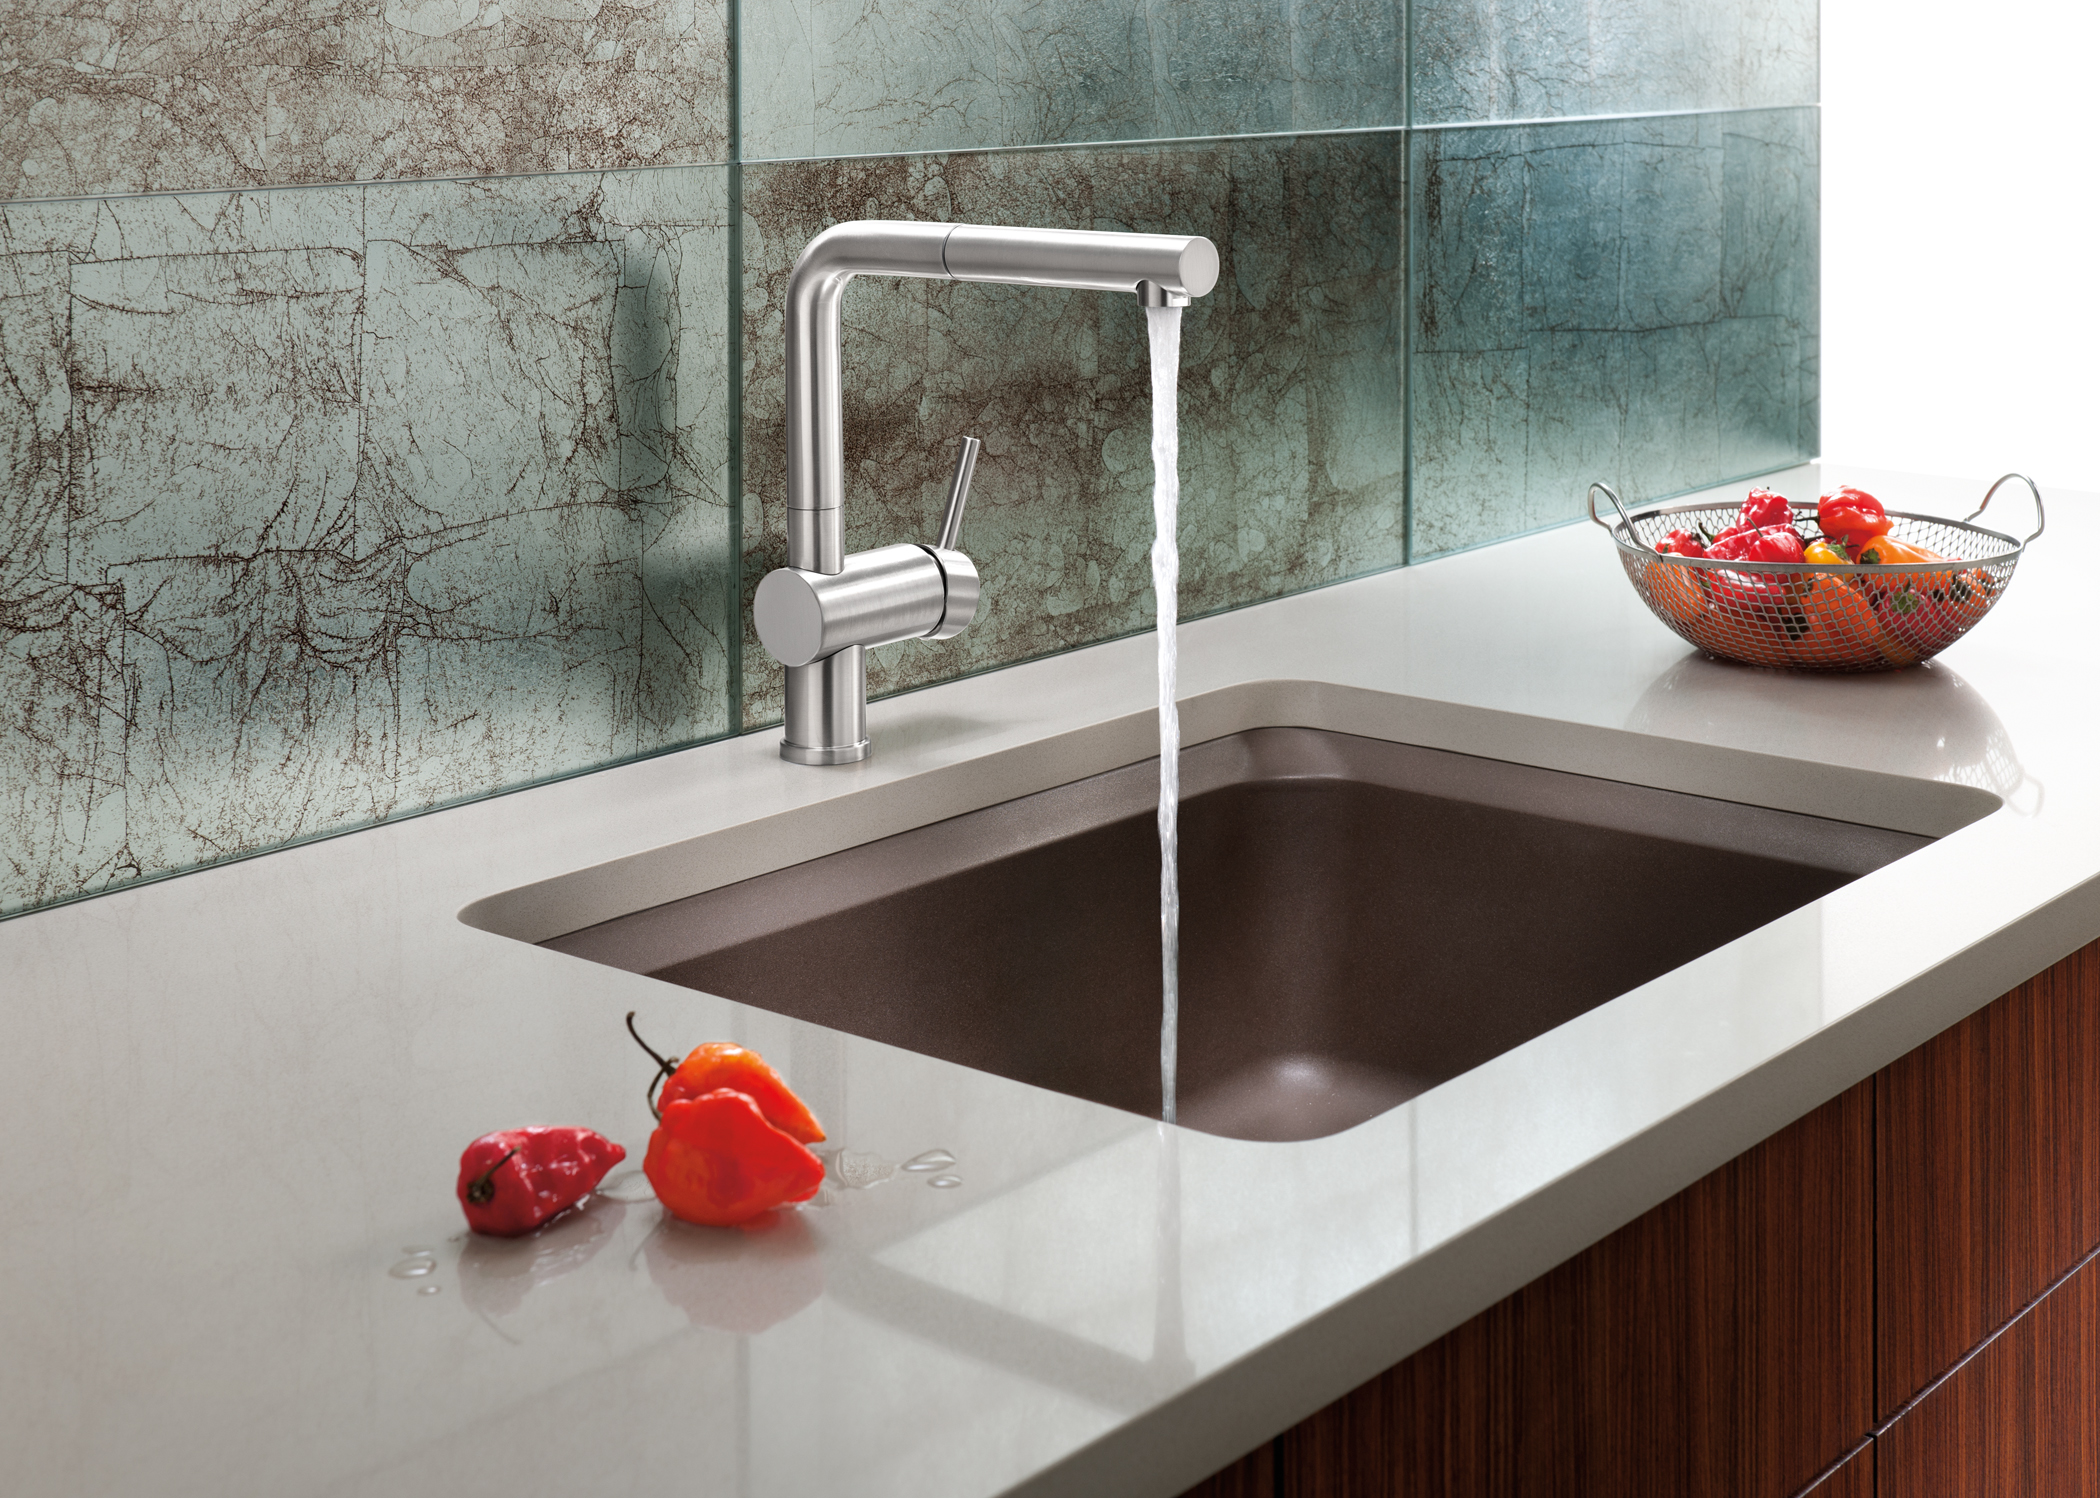 The new blanco silgranit ii vision designer kitchen sink for Blancoamerica com kitchen sinks